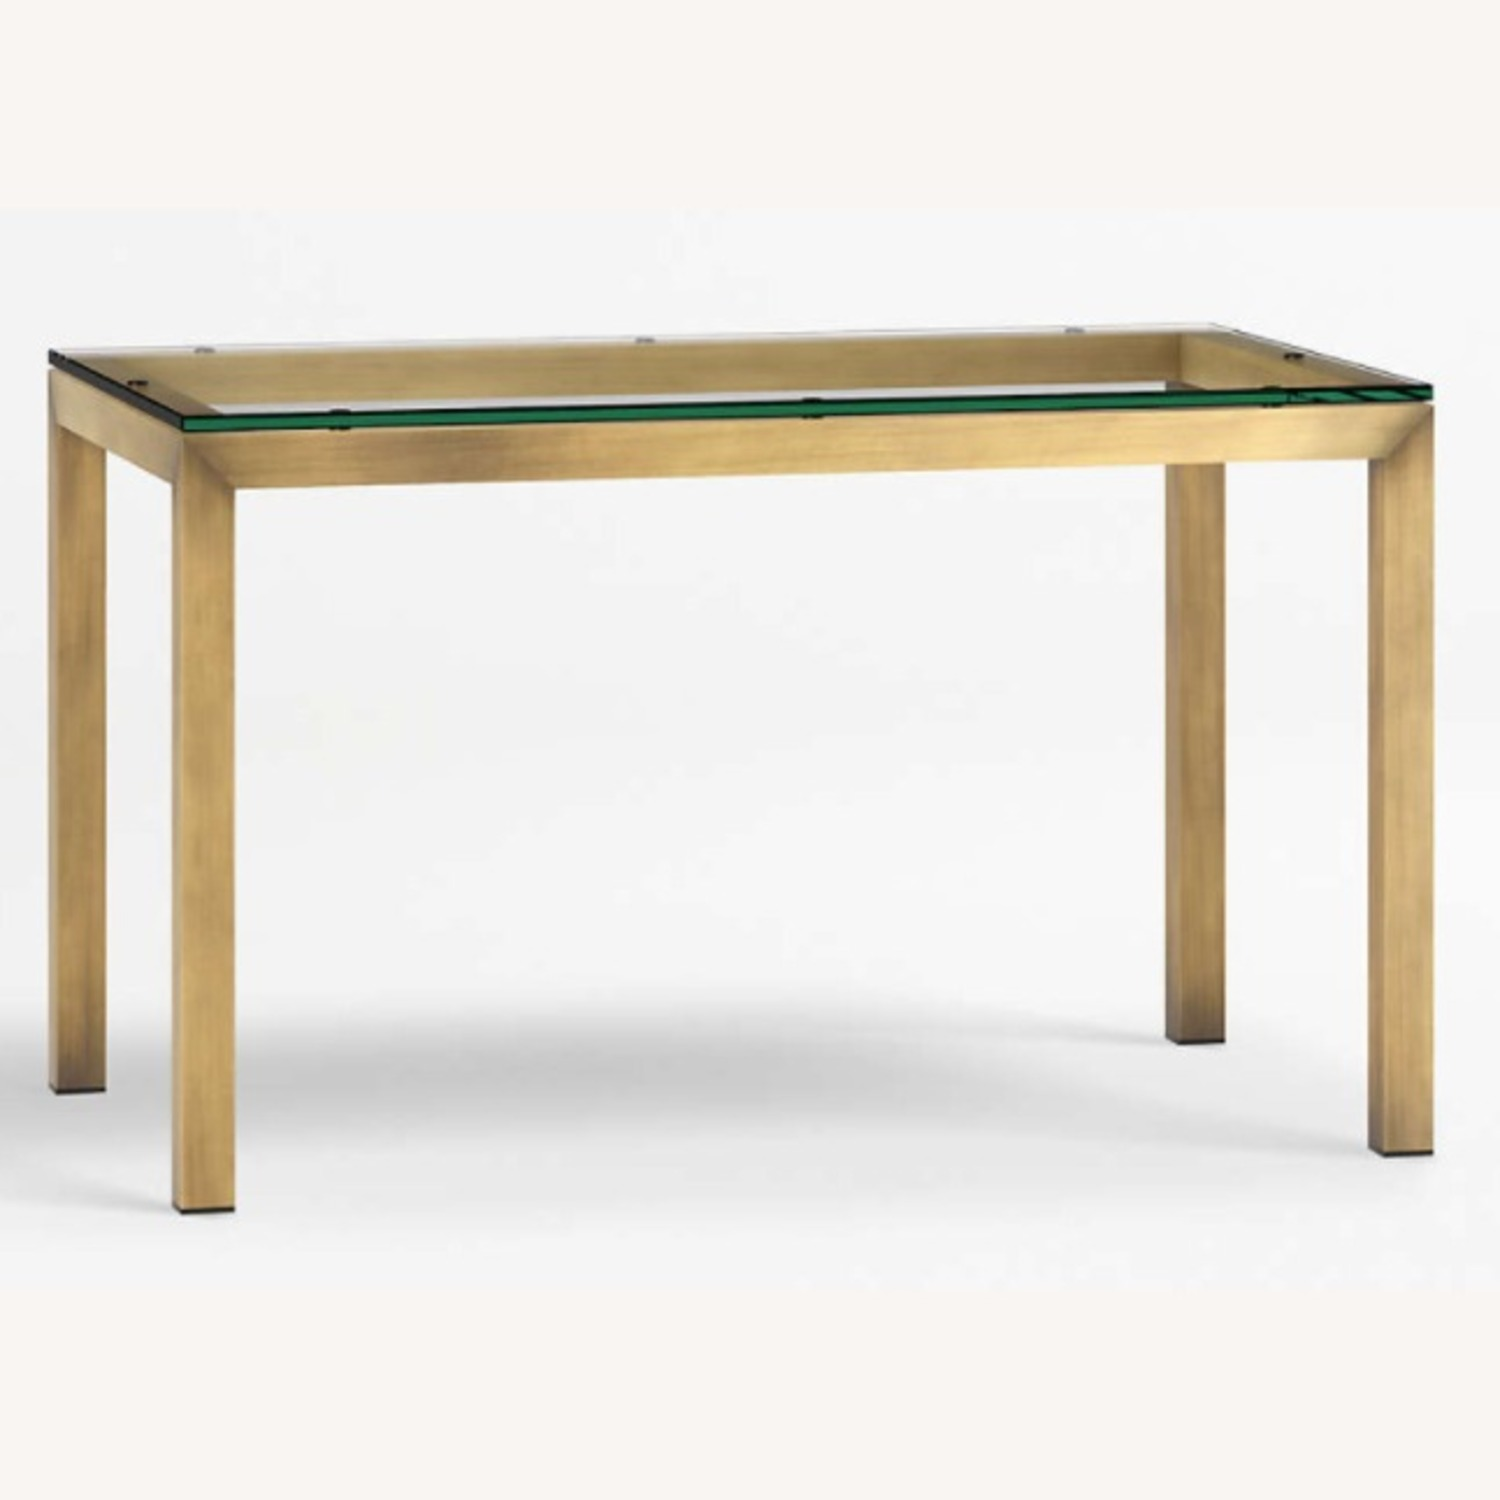 Crate & Barrel Parsons Dining Table - image-1